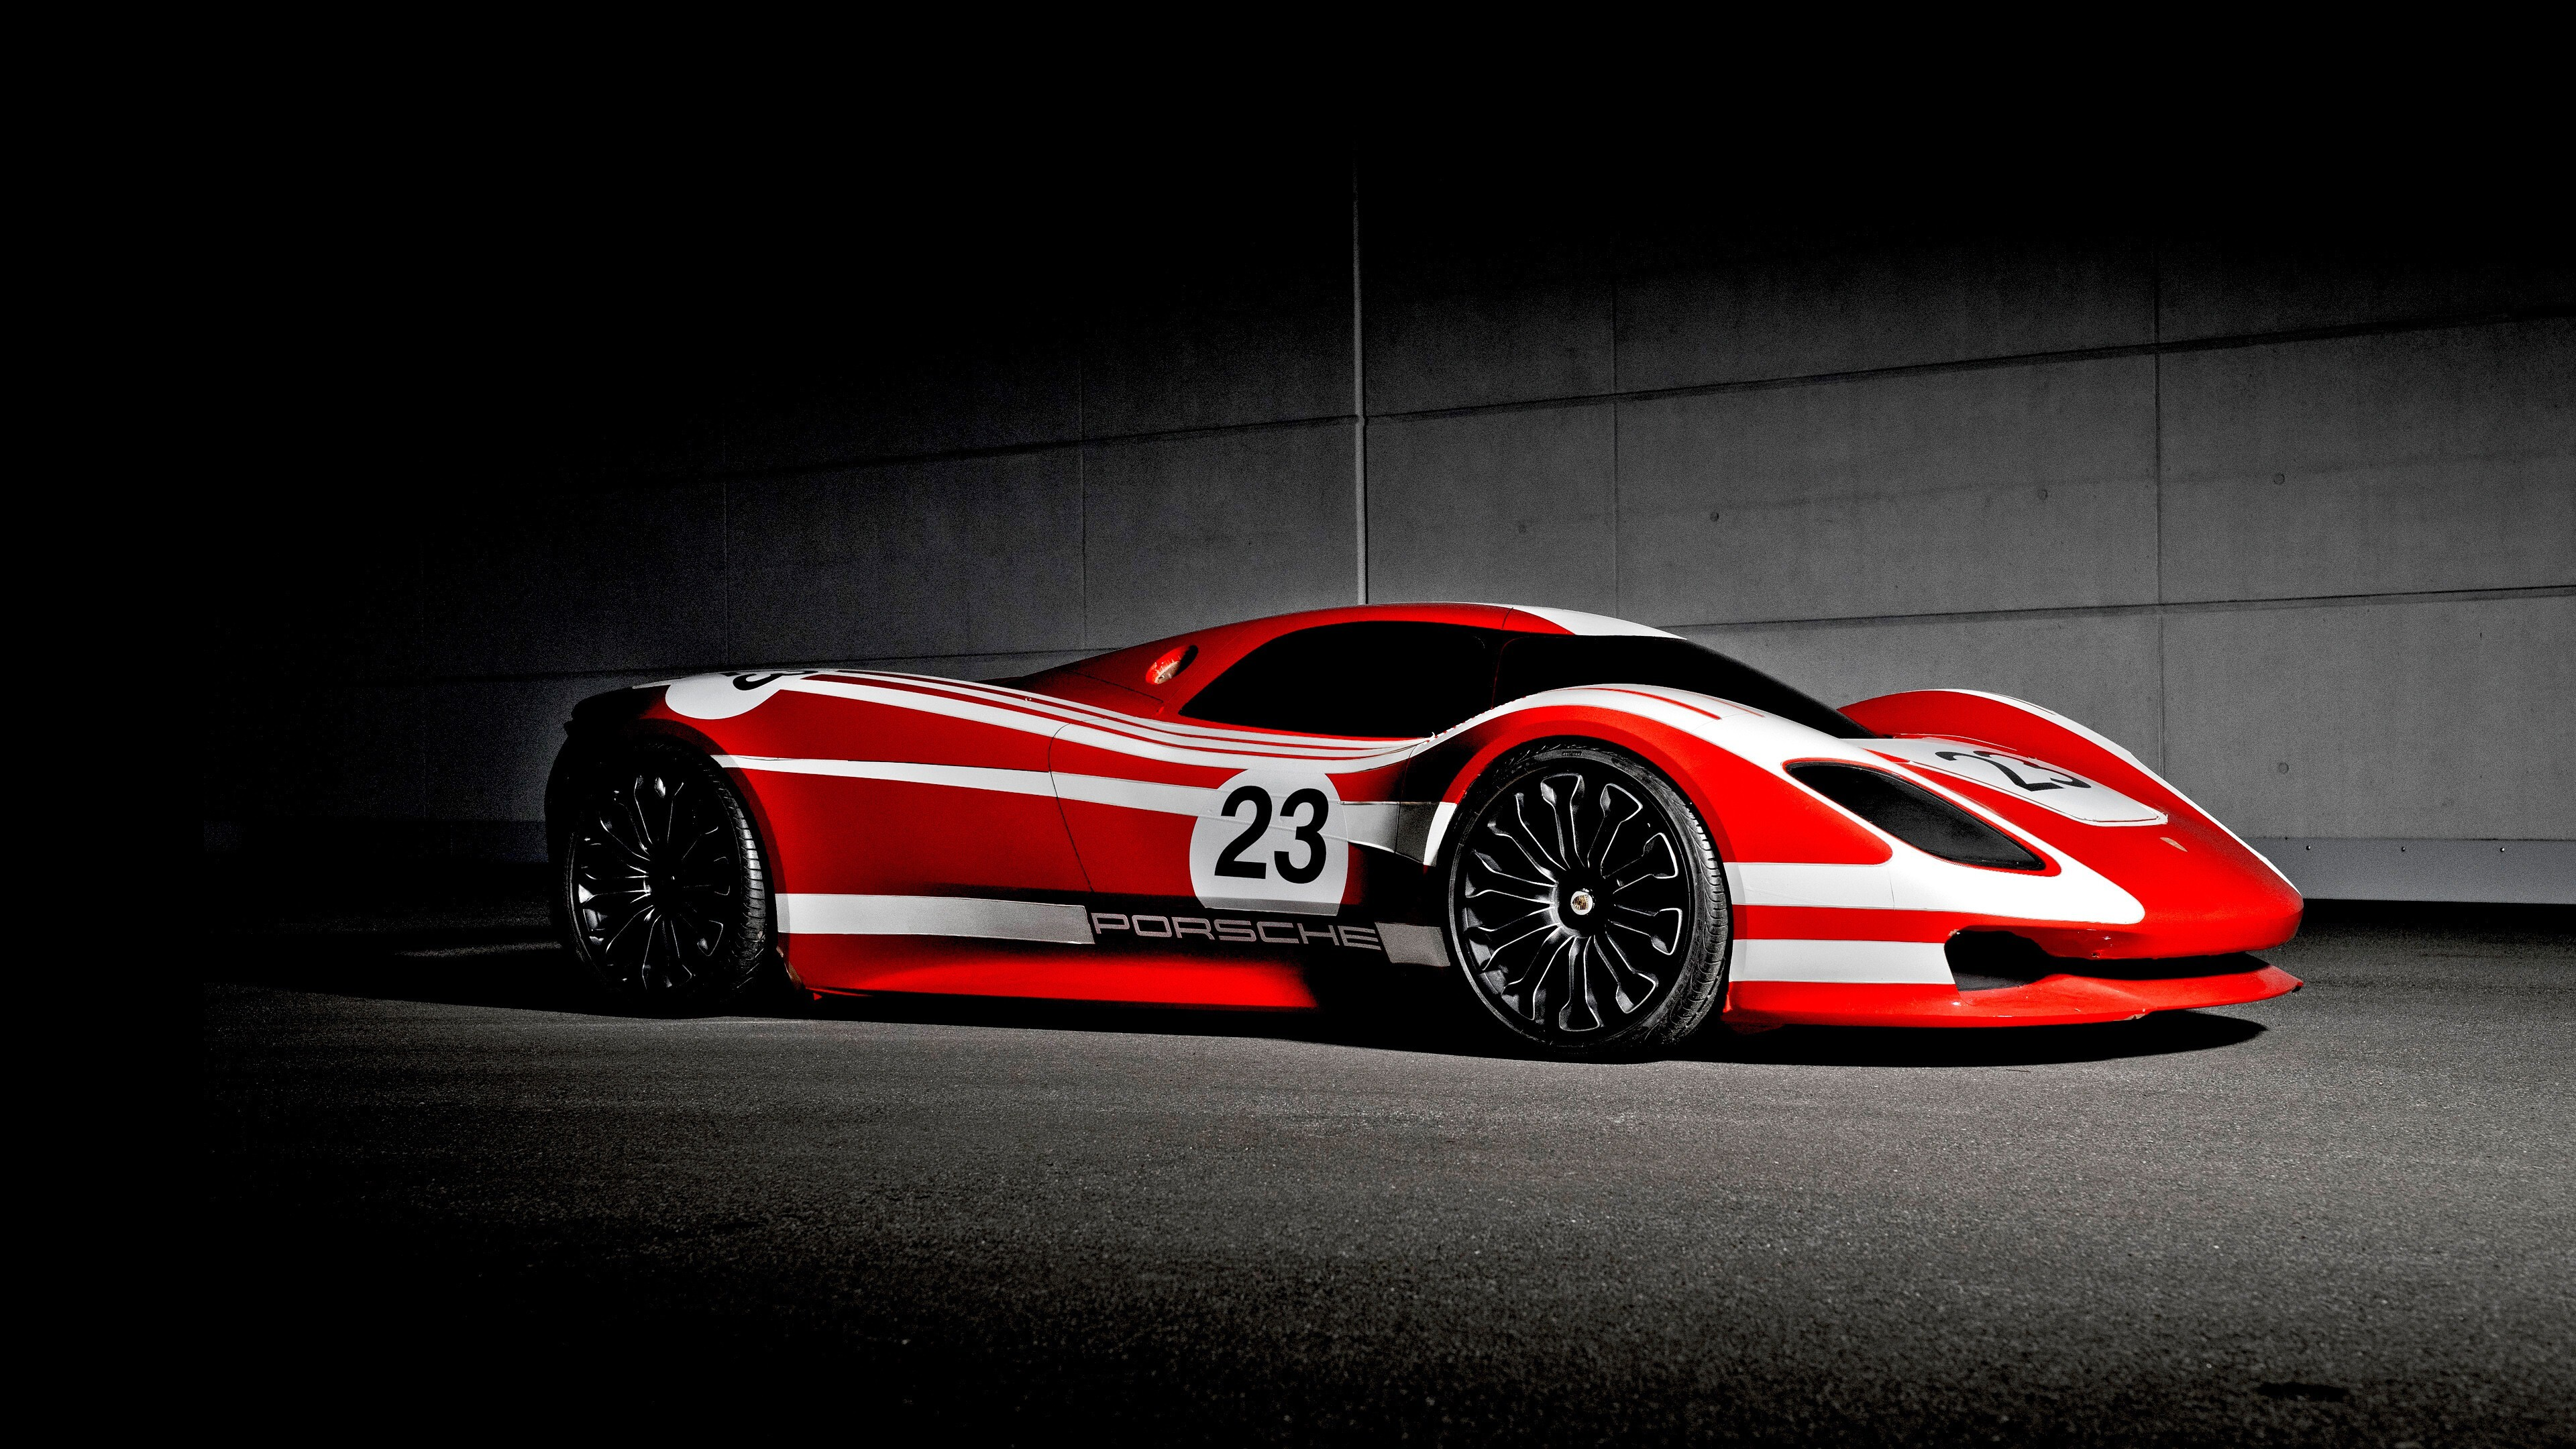 2019 Red Porsche 917 Hommage 4K Car Wallpaper | HD Wallpapers